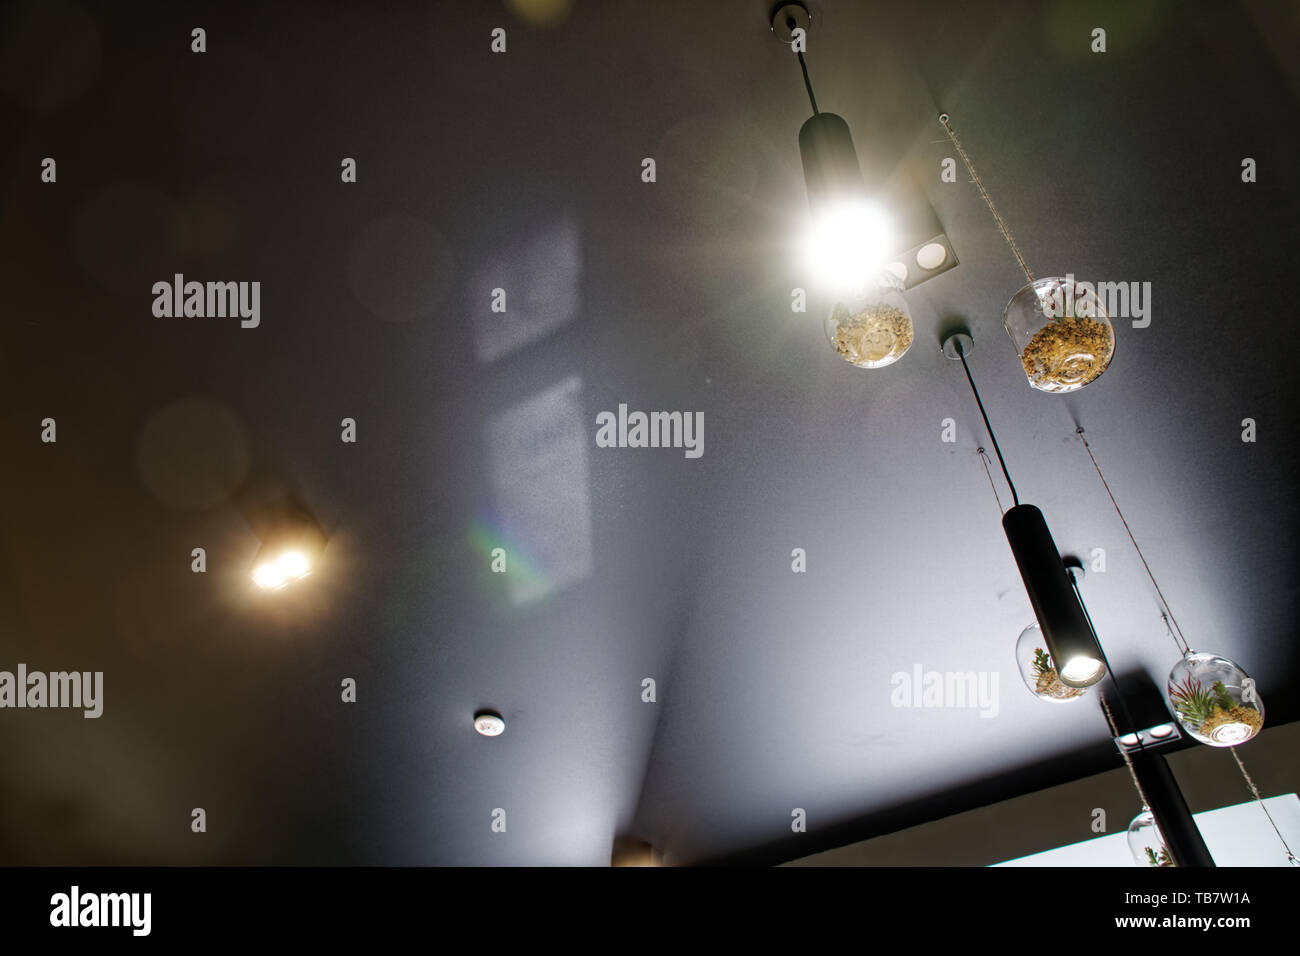 Decorative Lighting Design Cafe Interior Light Lamp With Bulb Hanging In The Cafe Decorative Industrial Interior Loft Style In The Restaurant Pan Stock Photo Alamy